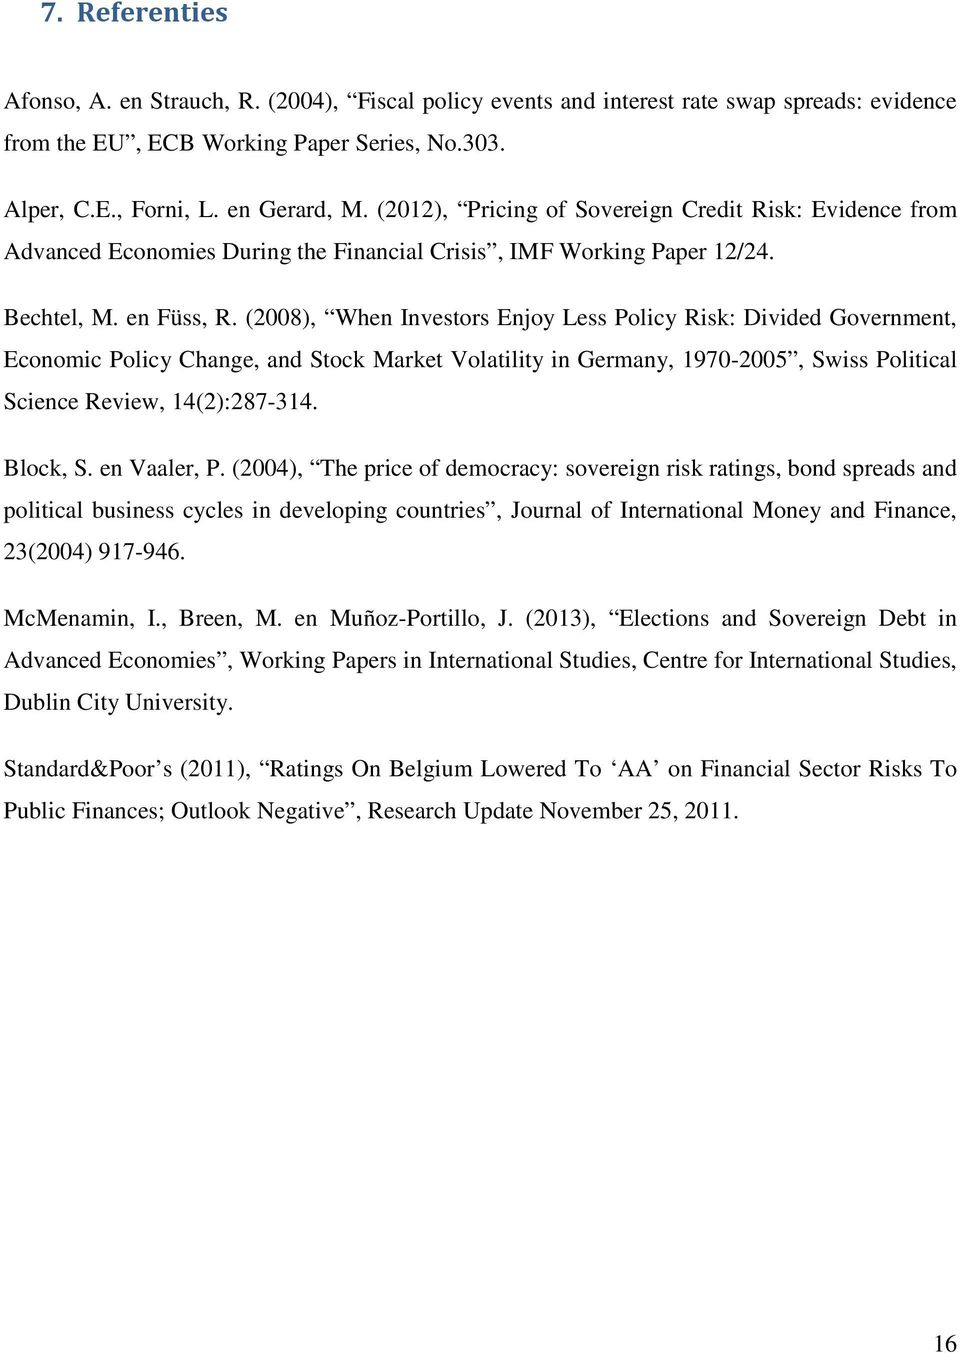 (2008), When Investors Enjoy Less Policy Risk: Divided Government, Economic Policy Change, and Stock Market Volatility in Germany, 1970-2005, Swiss Political Science Review, 14(2):287-314. Block, S.